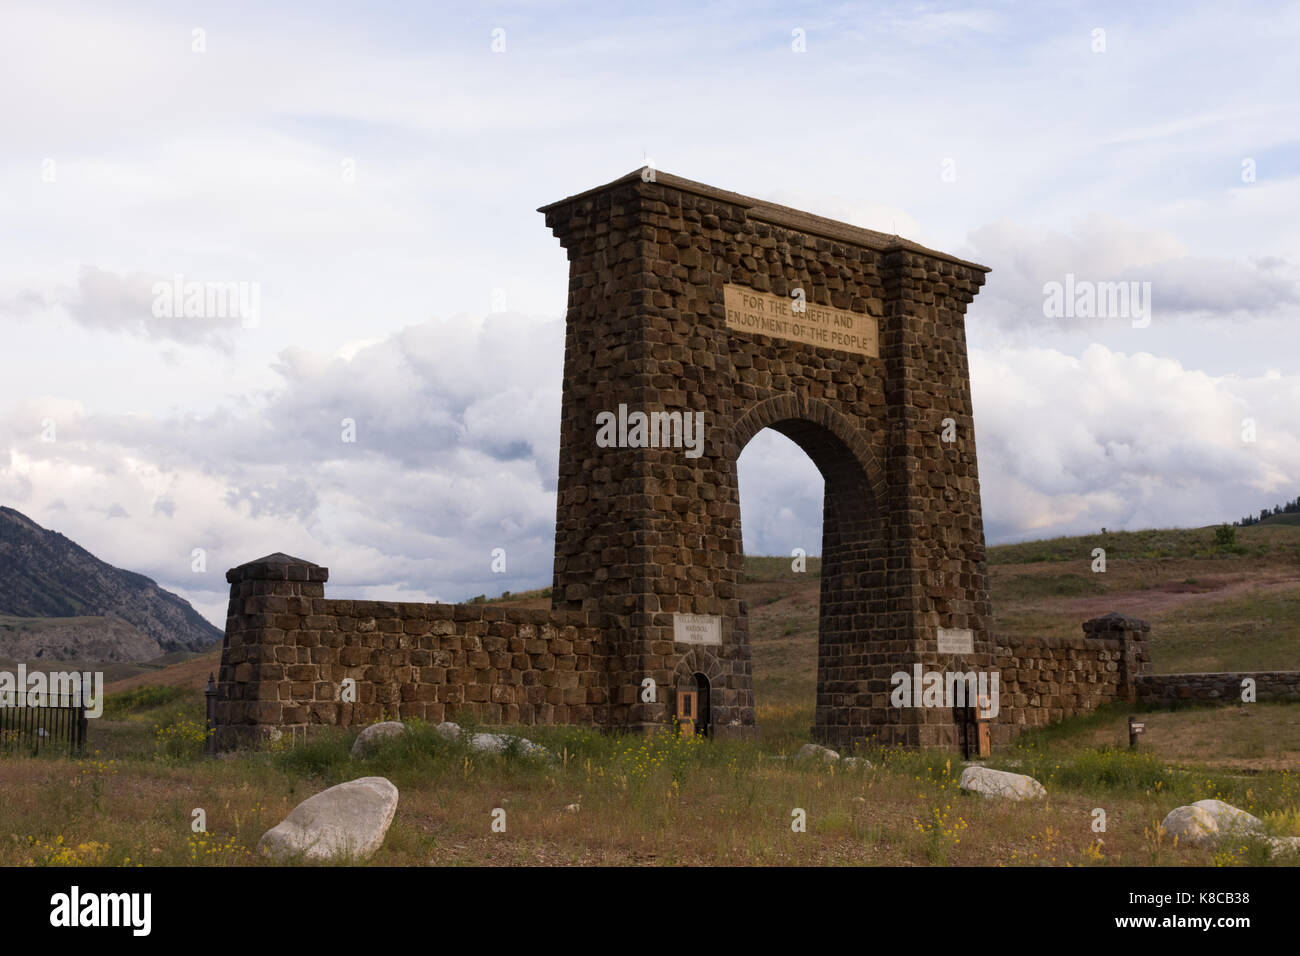 The Roosevelt Arch at the entranace of Yellowstone National Park with mountains and foothills in the background - Stock Image